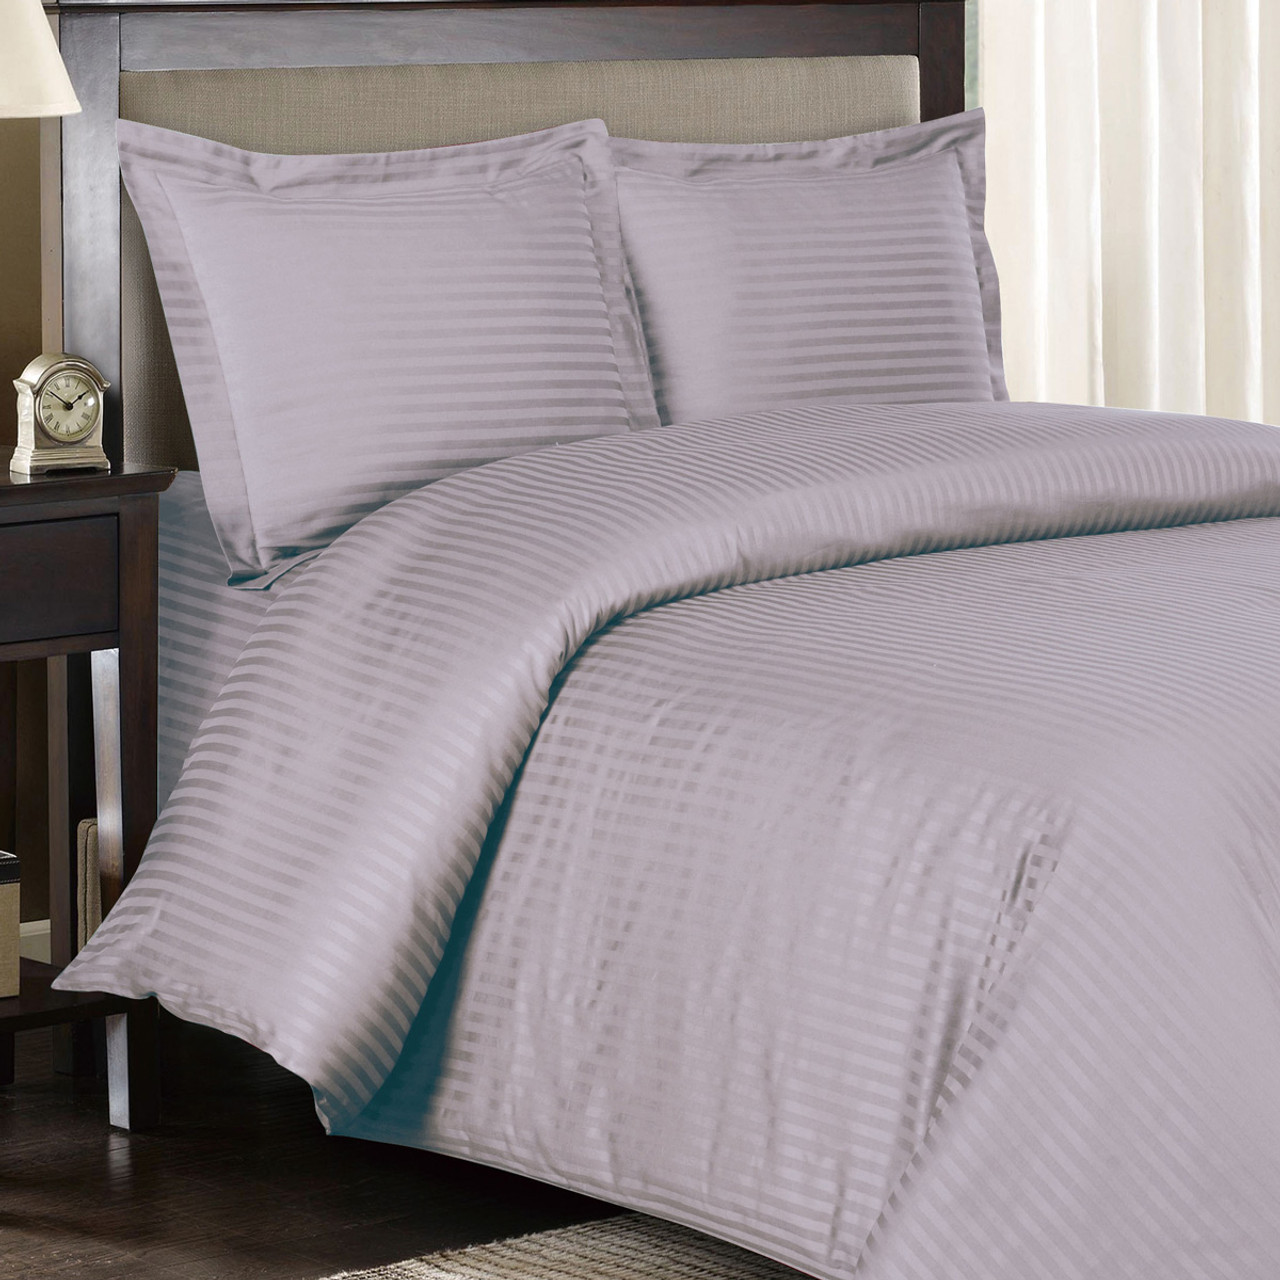 set cover dunelm product woven and willington duvet grey main pillowcase striped